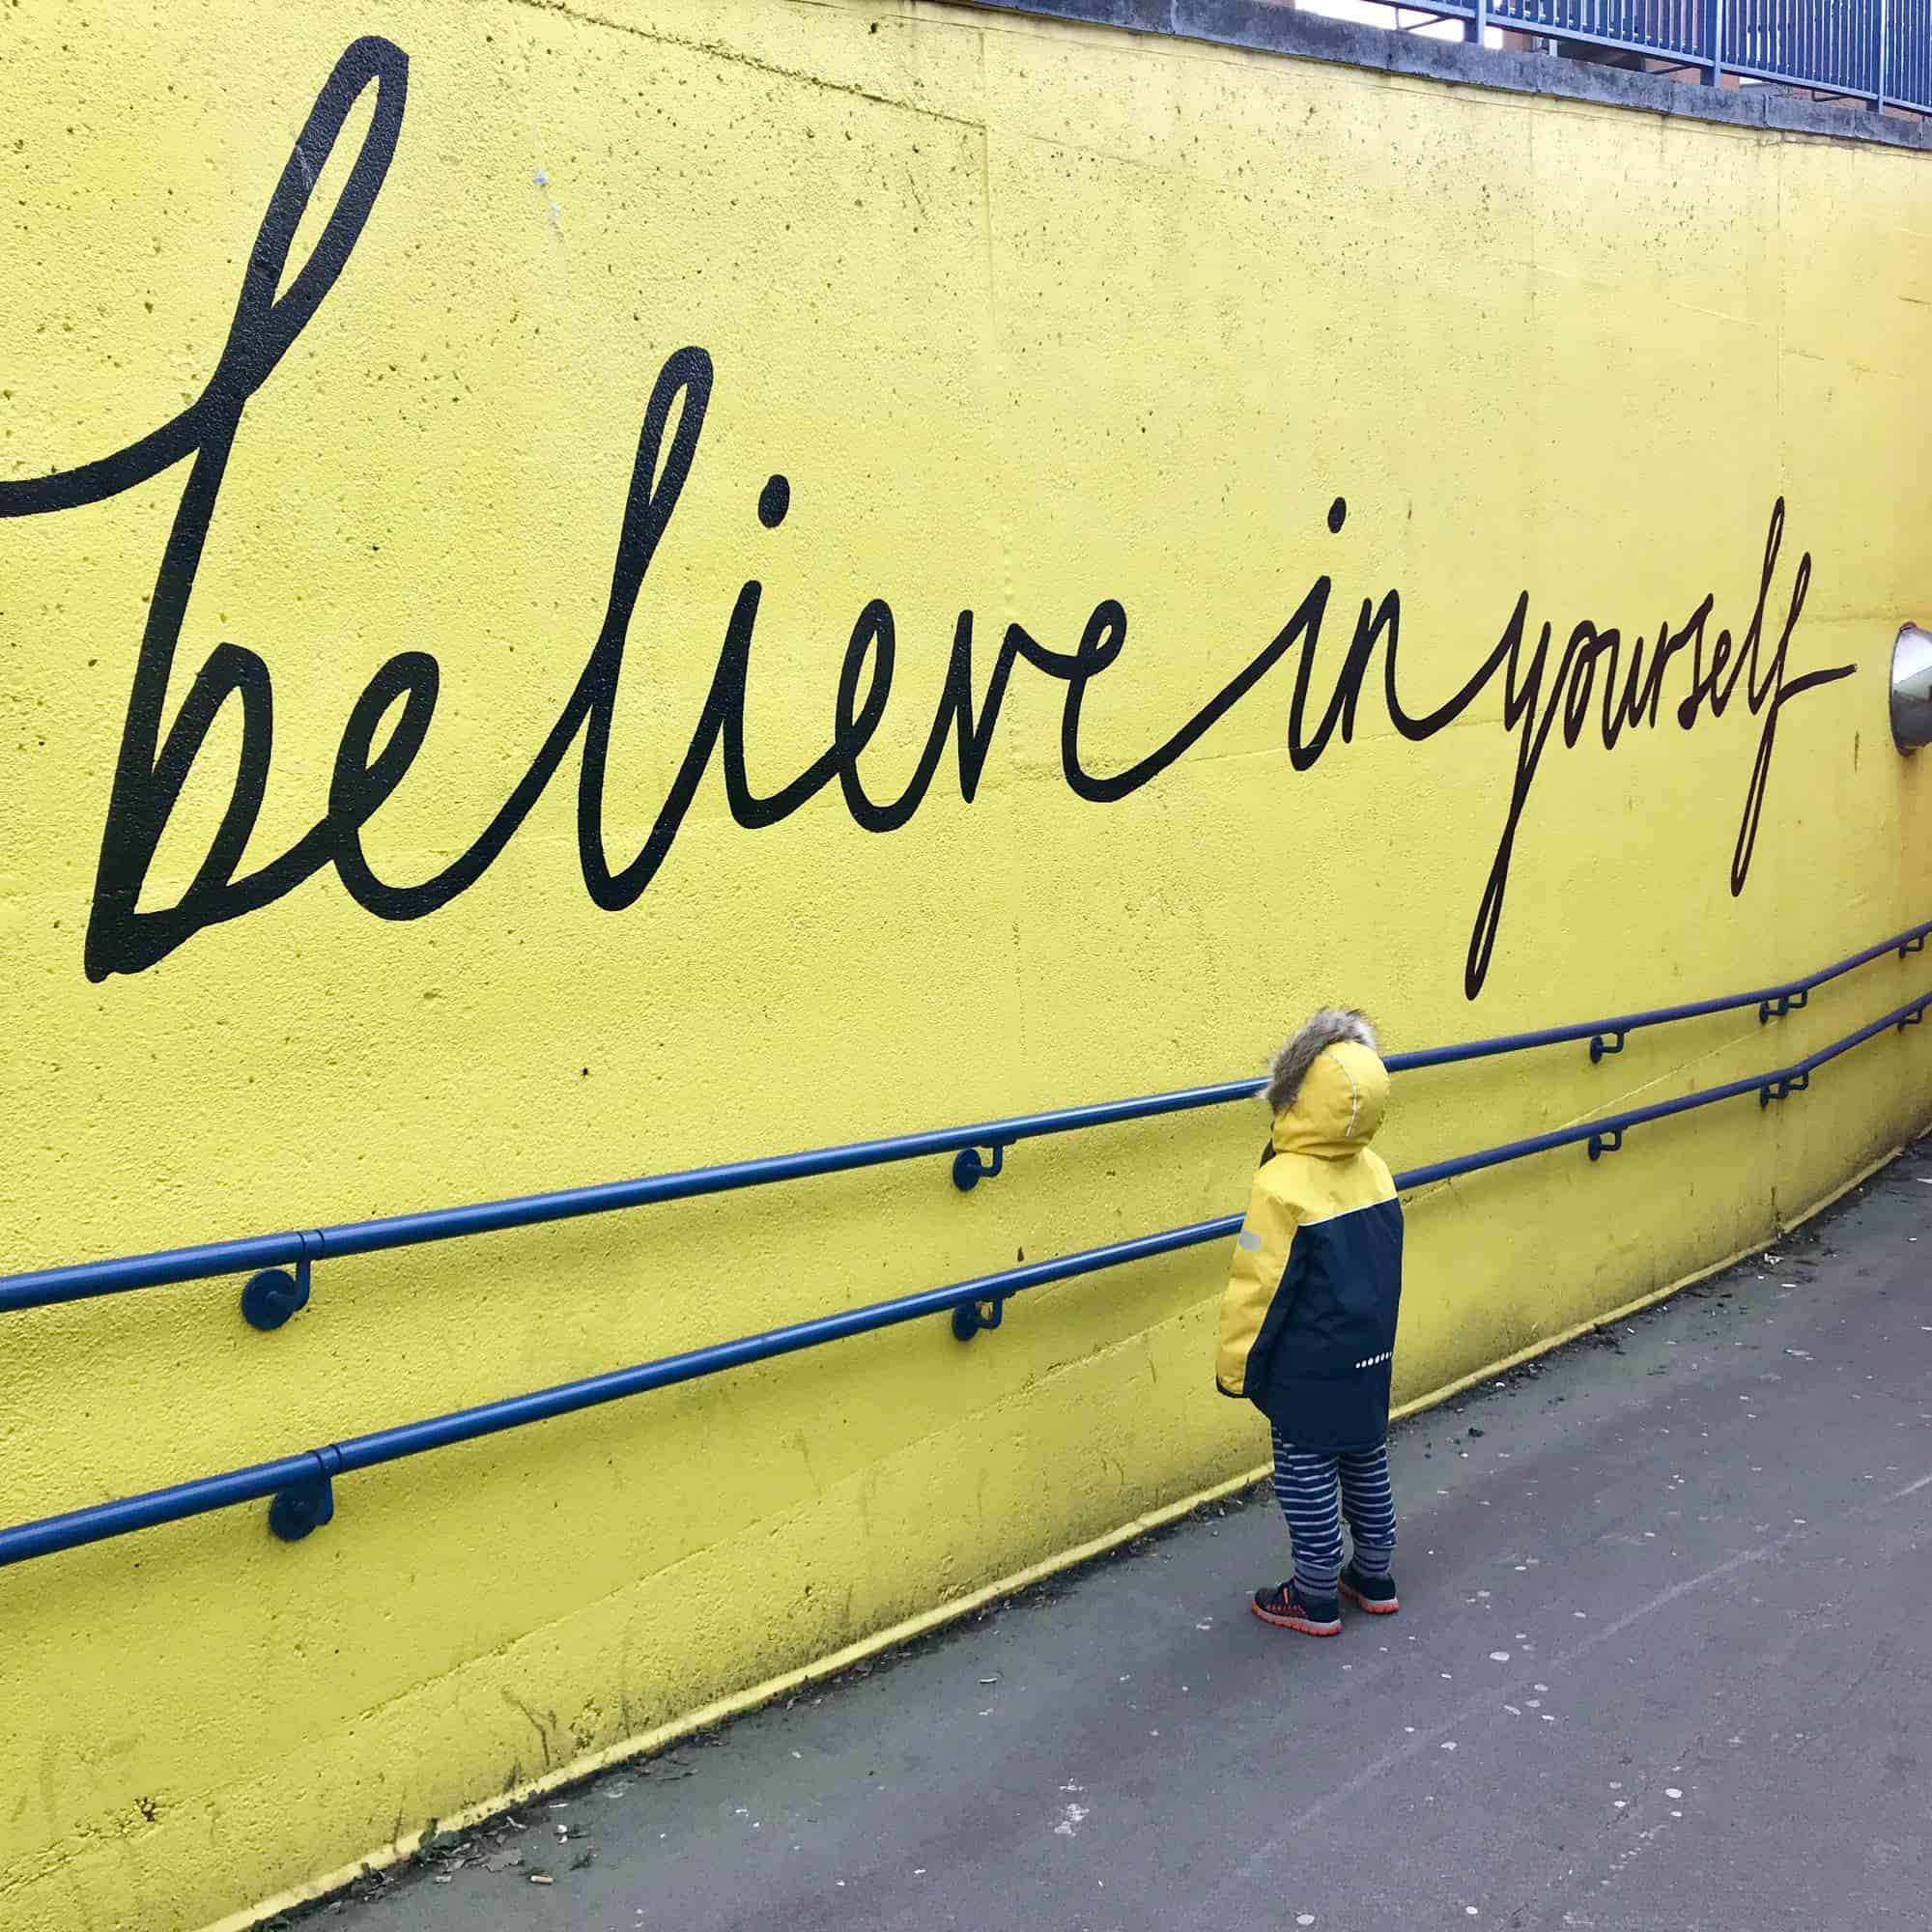 'believe in yourself' written in black cursive on a yellow wall, with a child in a yellow and black coat looking at it